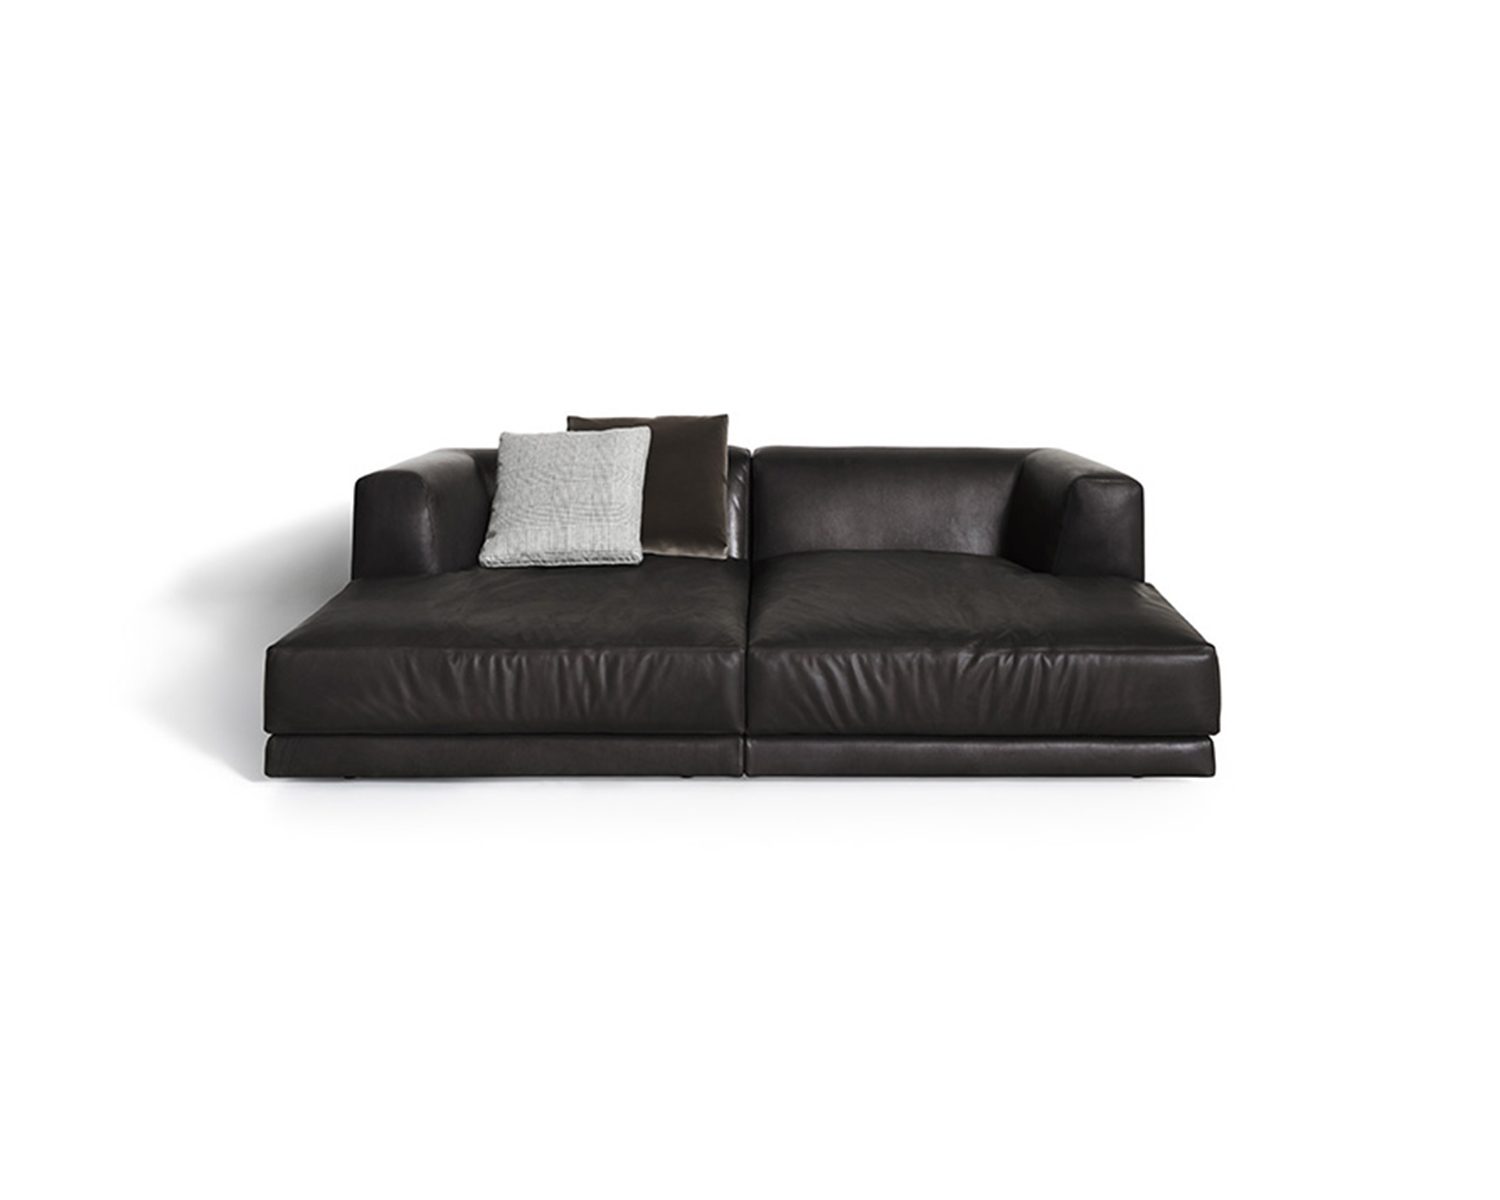 White Alberese loveseat in black leather with throw pillows in various neutral colours on white background